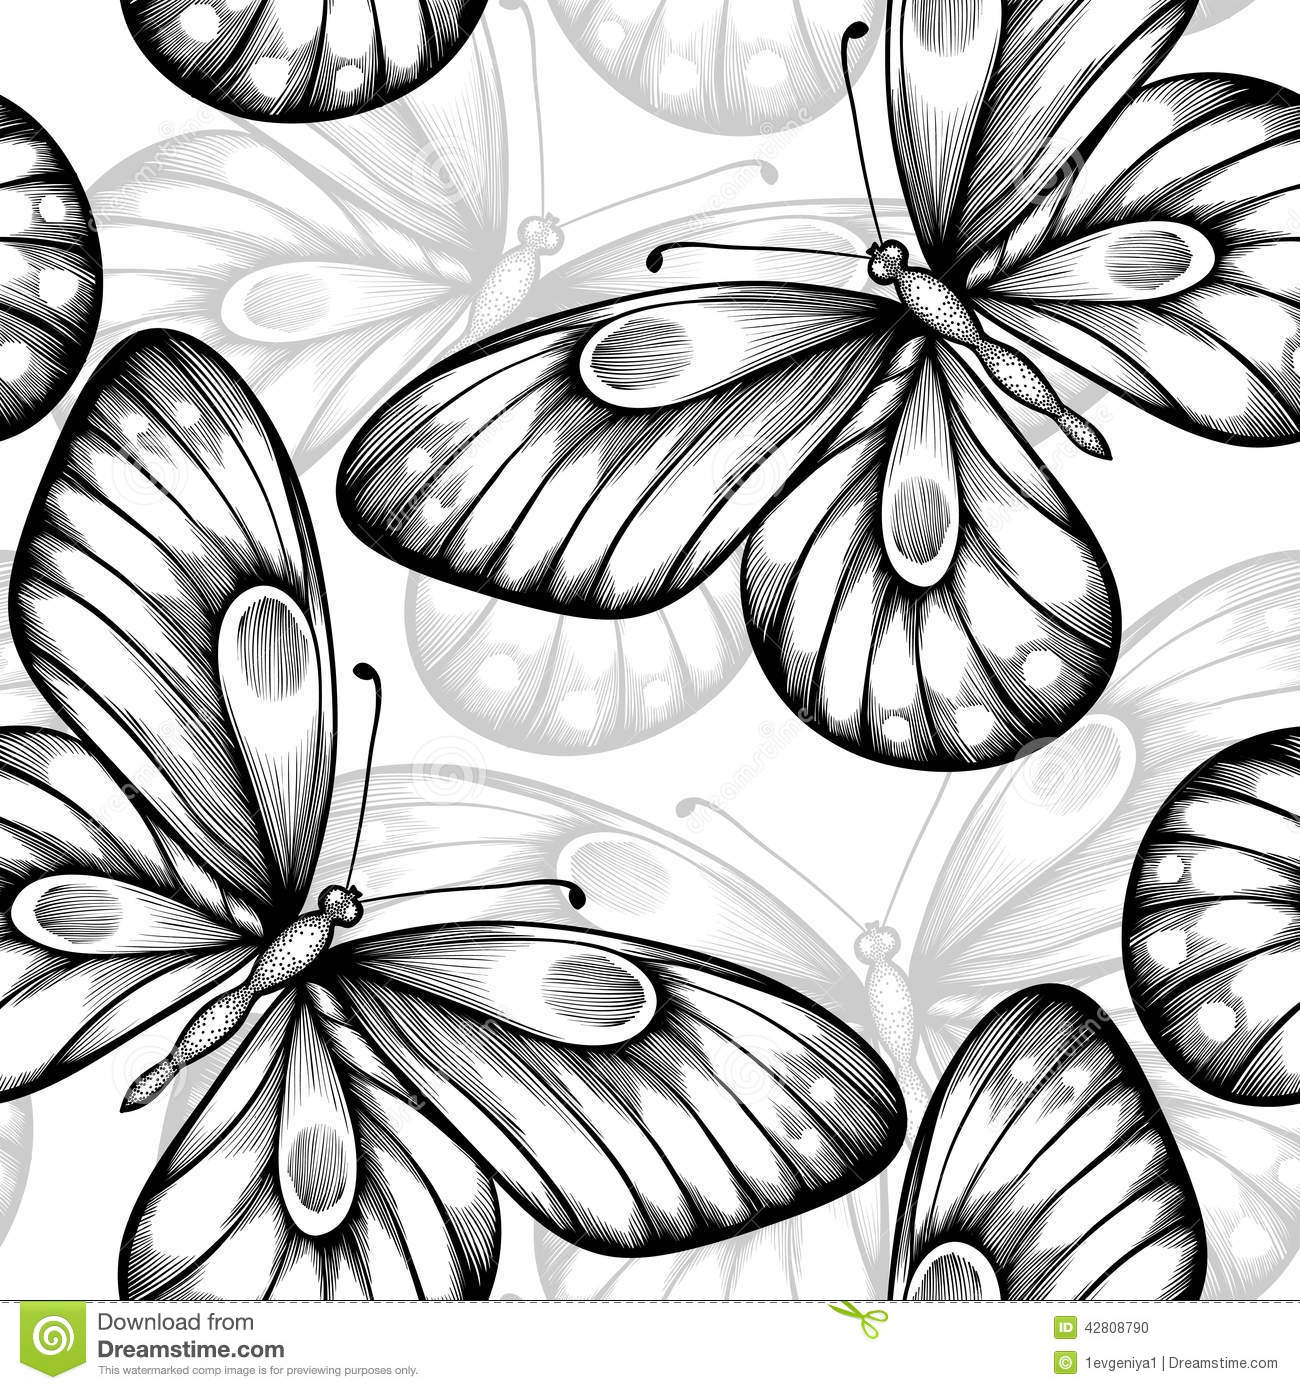 Contour Line Drawing Butterfly : Beautiful monochrome black and white seamless background